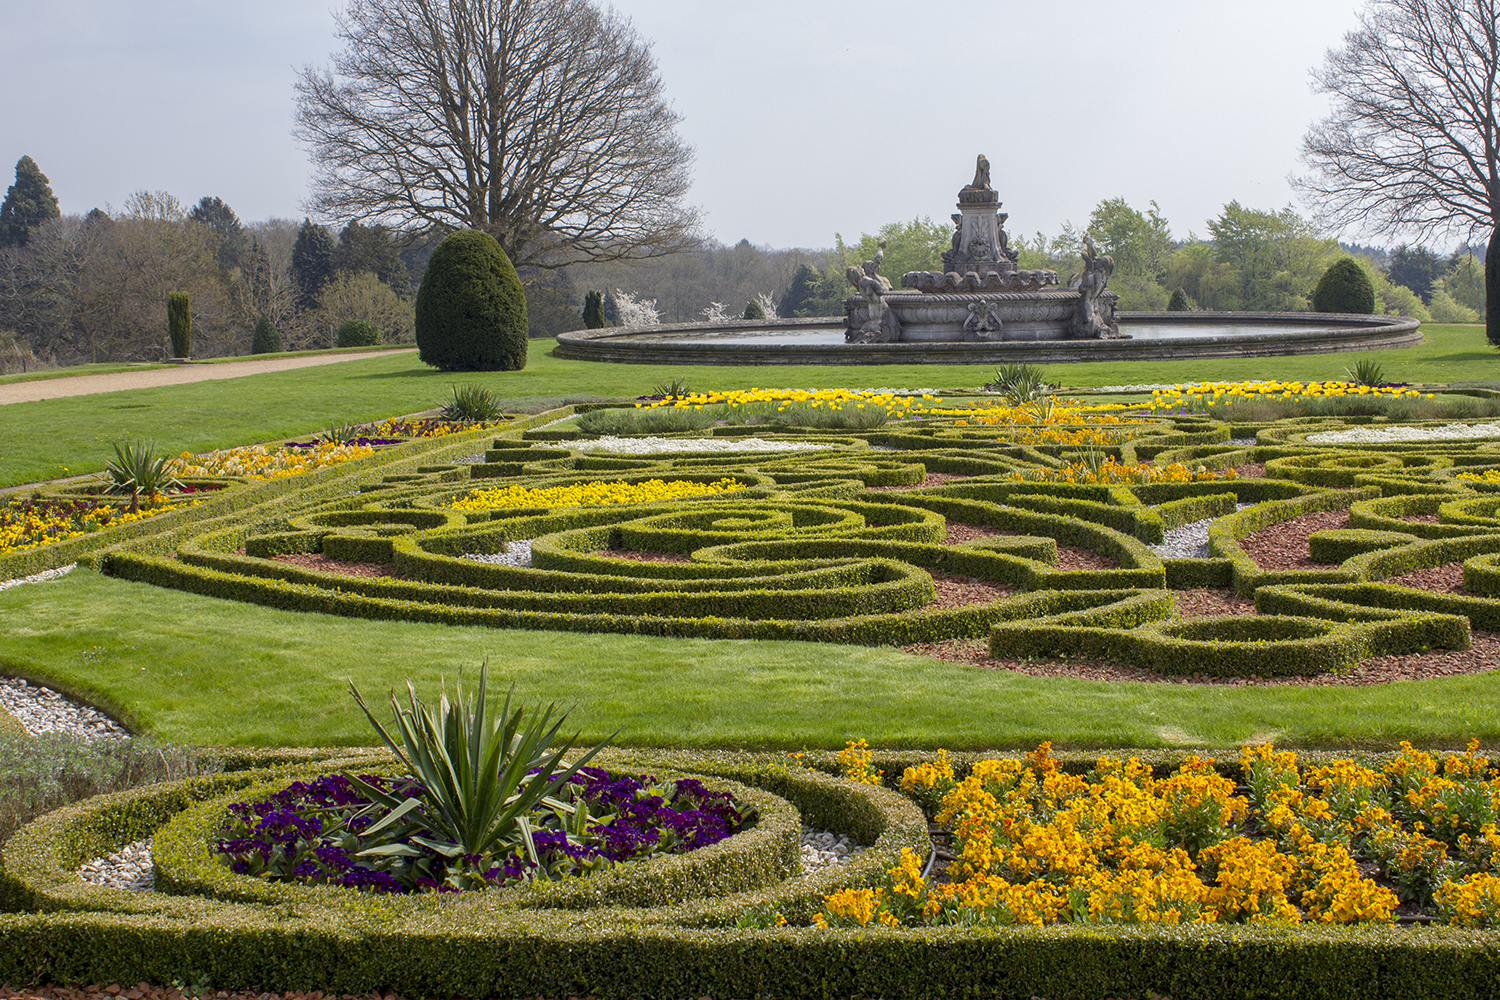 Witley Court and Gardens 7 April 21 2018.jpg